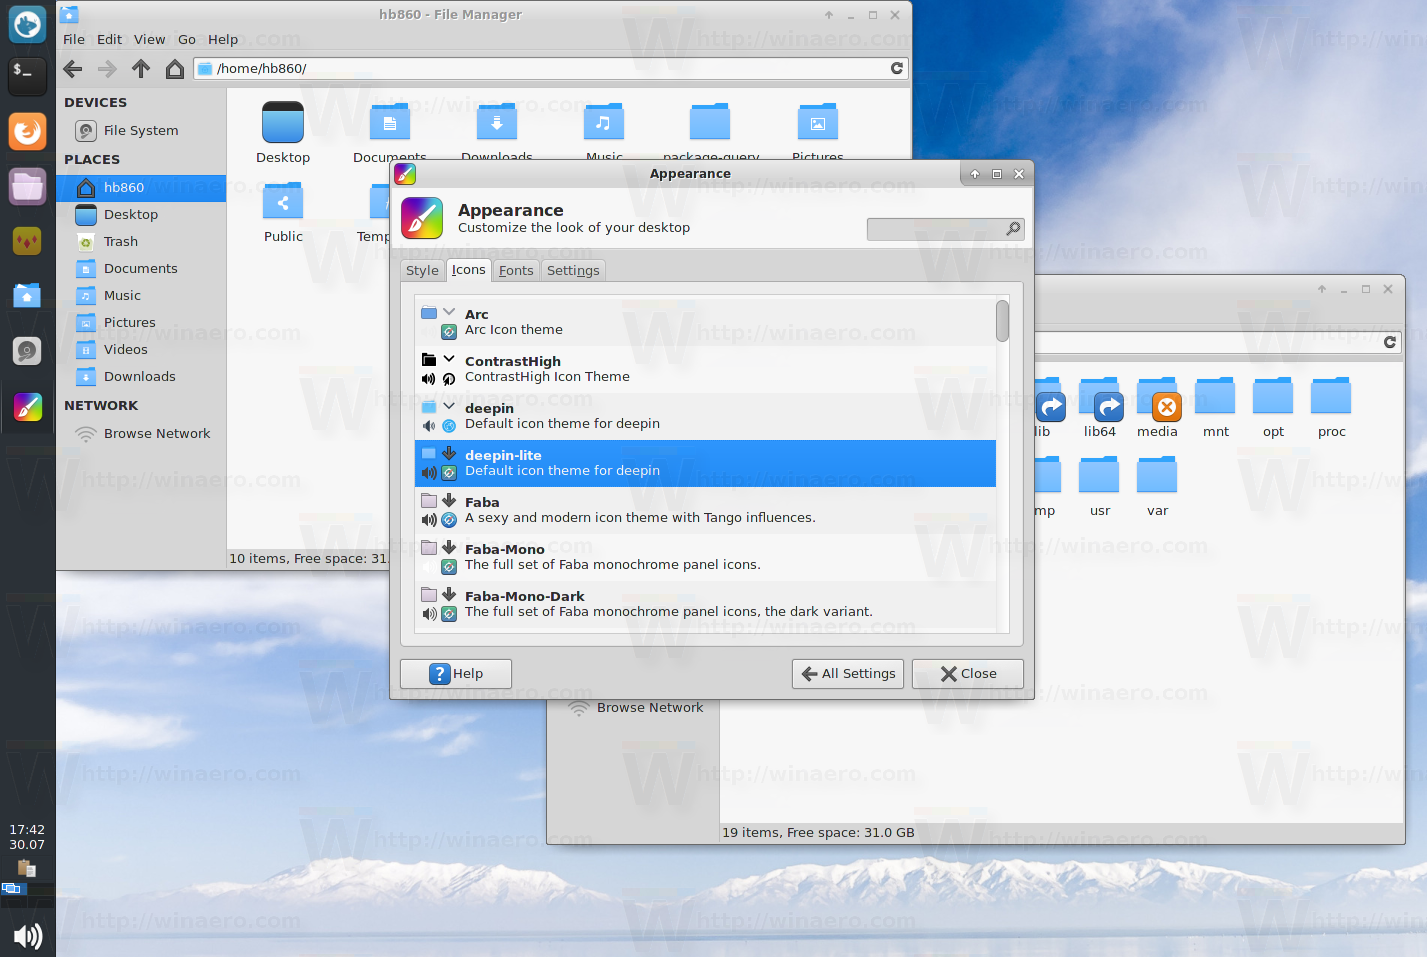 Deepin-lite icon set for Linux